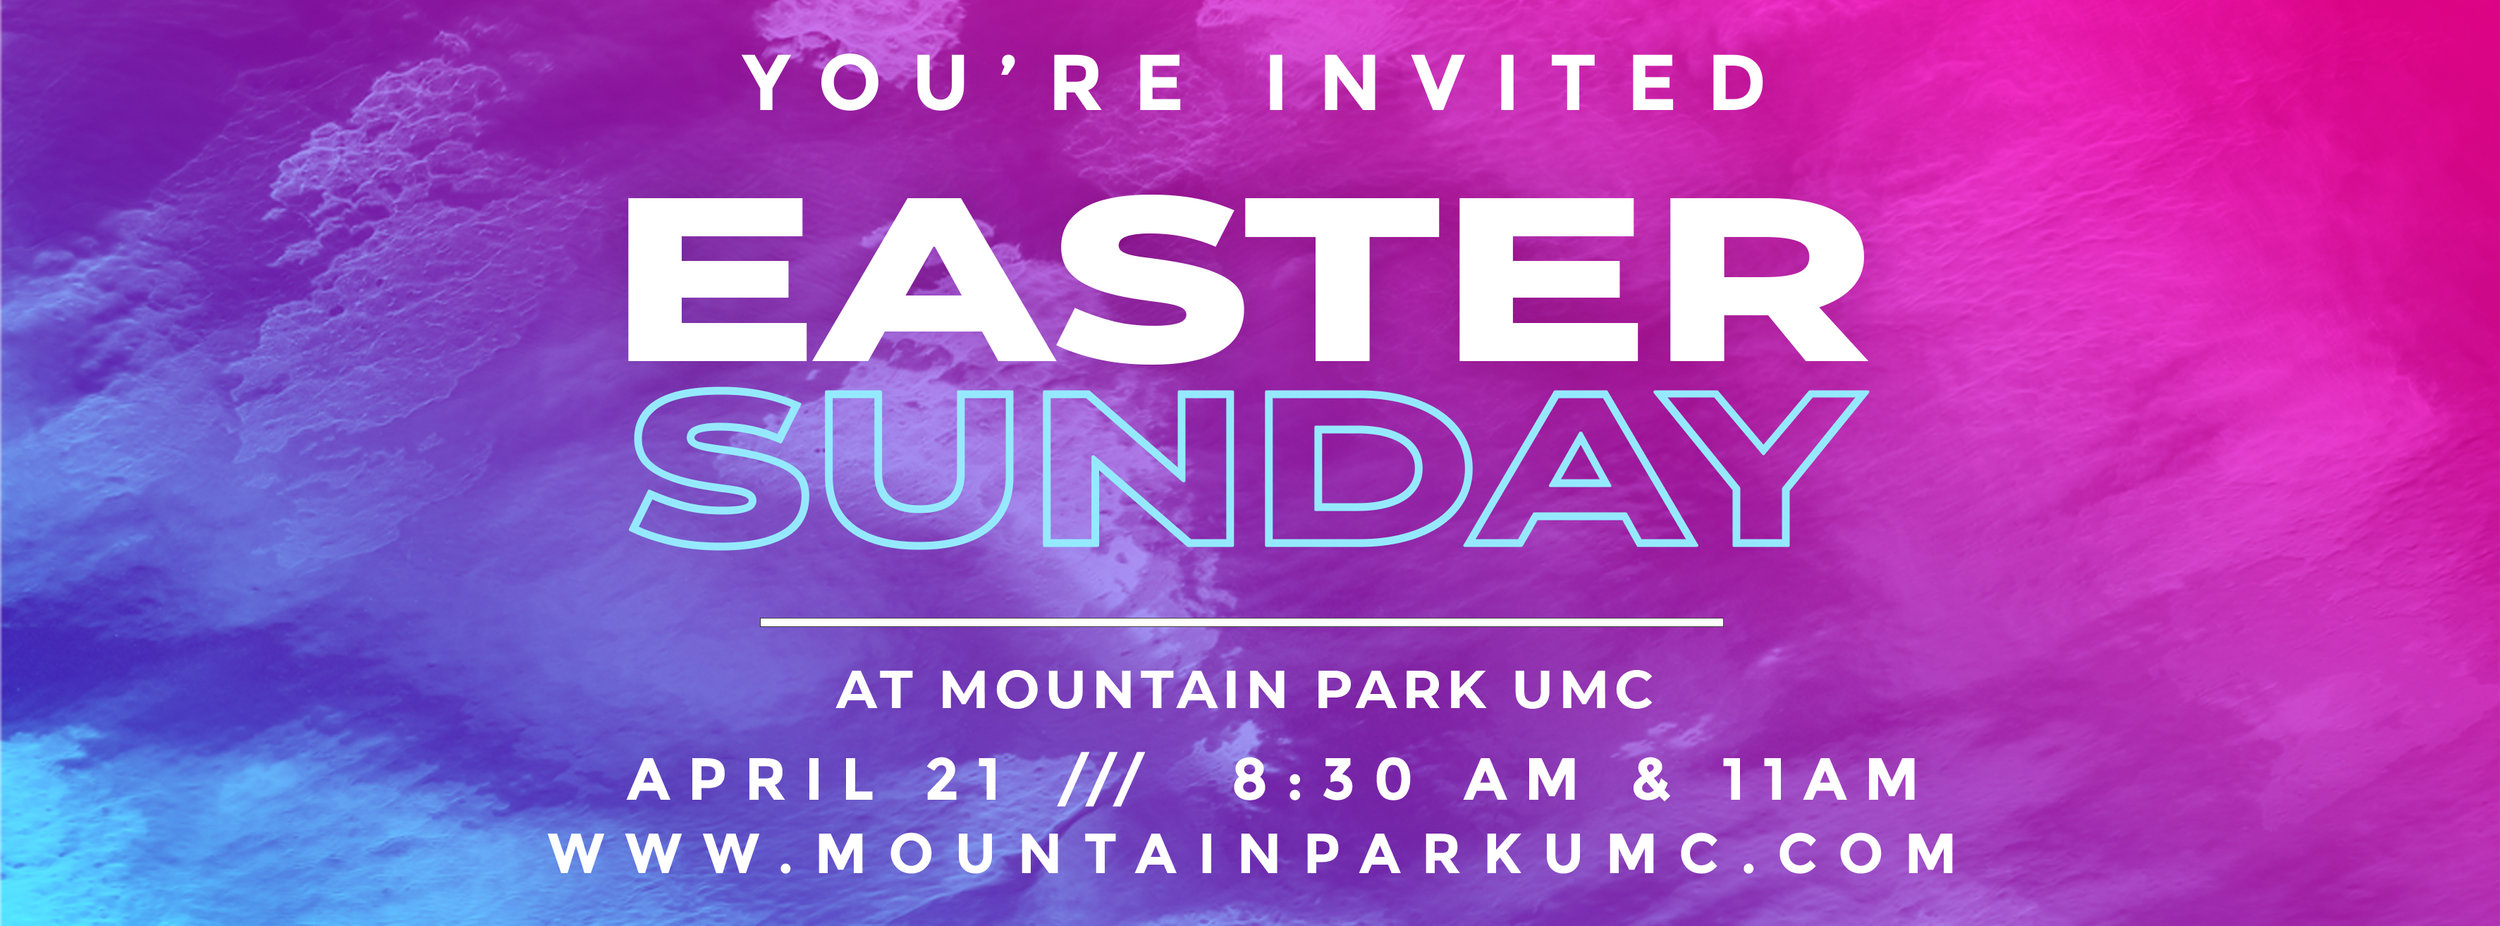 MPUMC Easter Sunday 2019_fb coverphoto.jpg